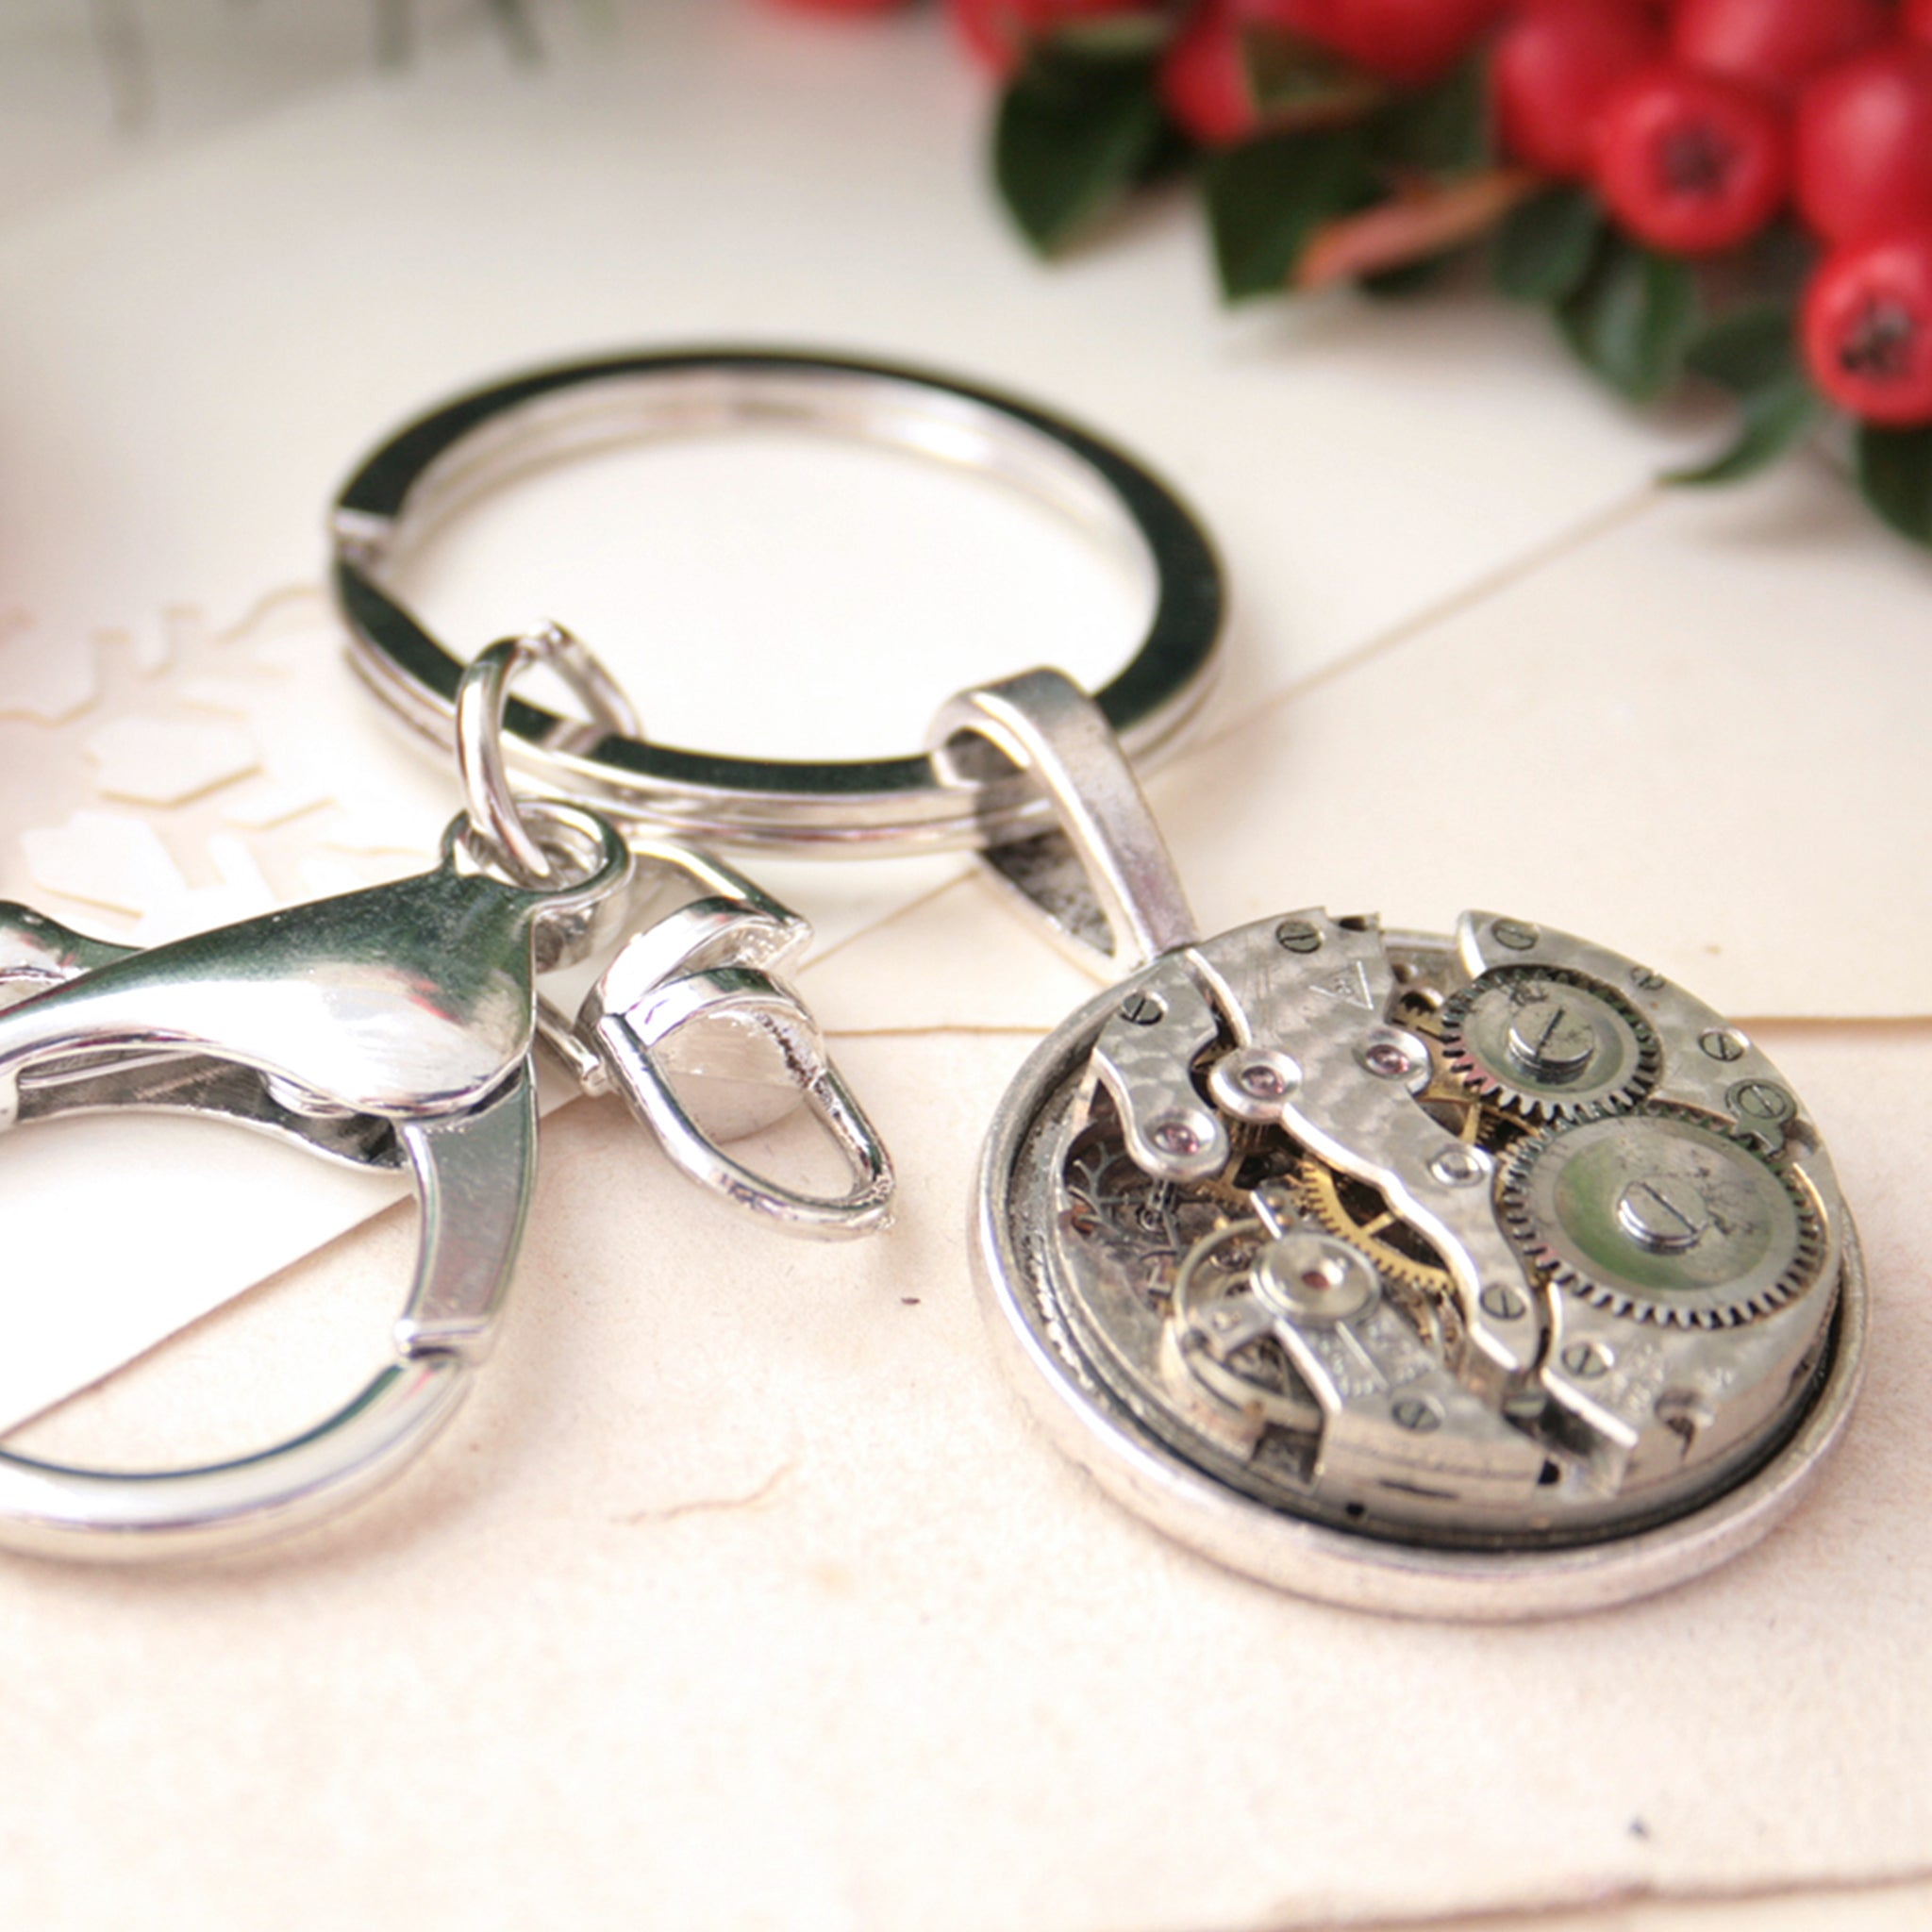 Mens Keychain with watch movement